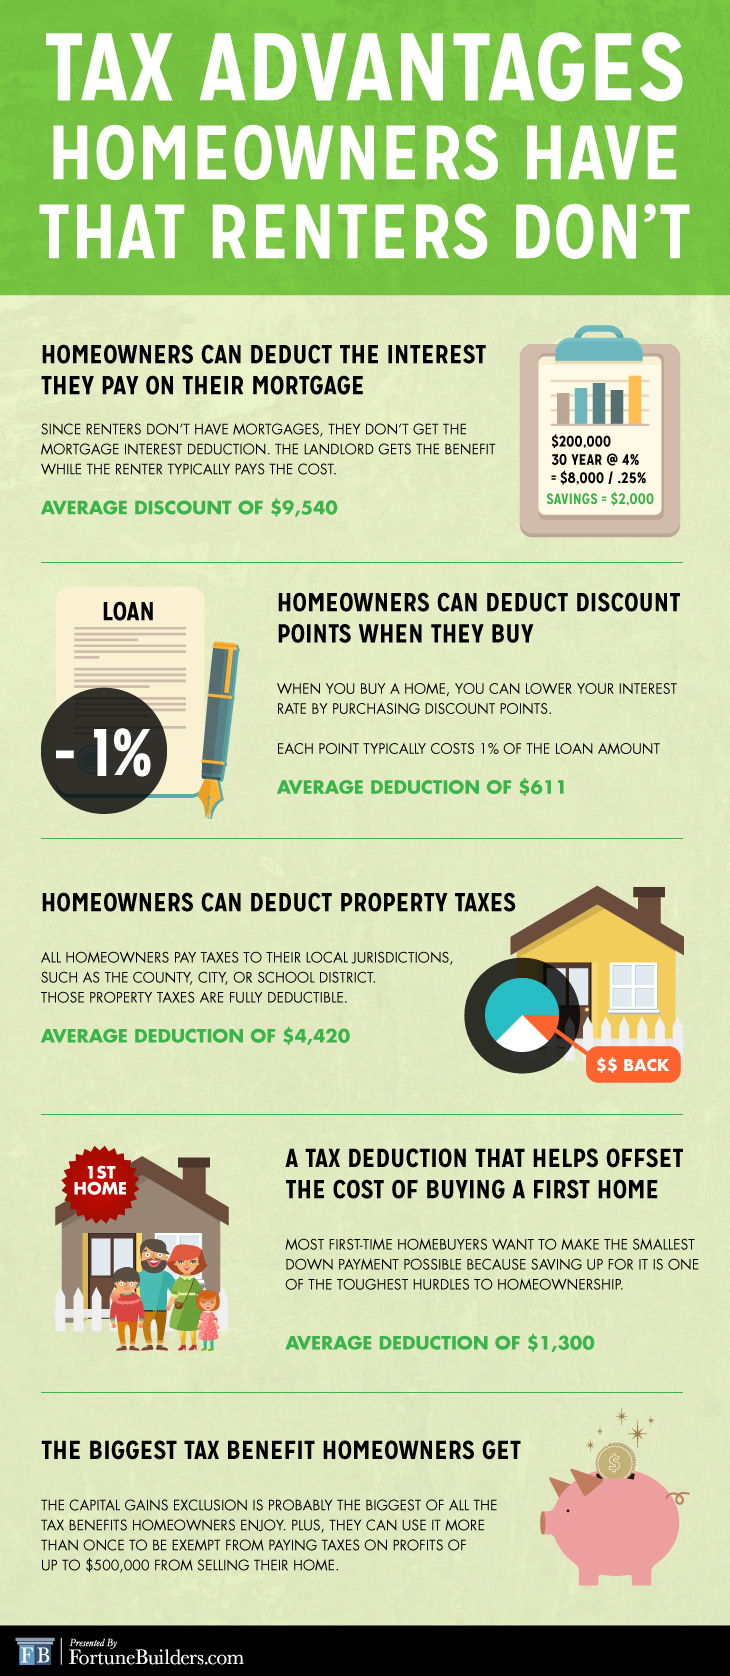 Tax advantages that homeowners have over renters